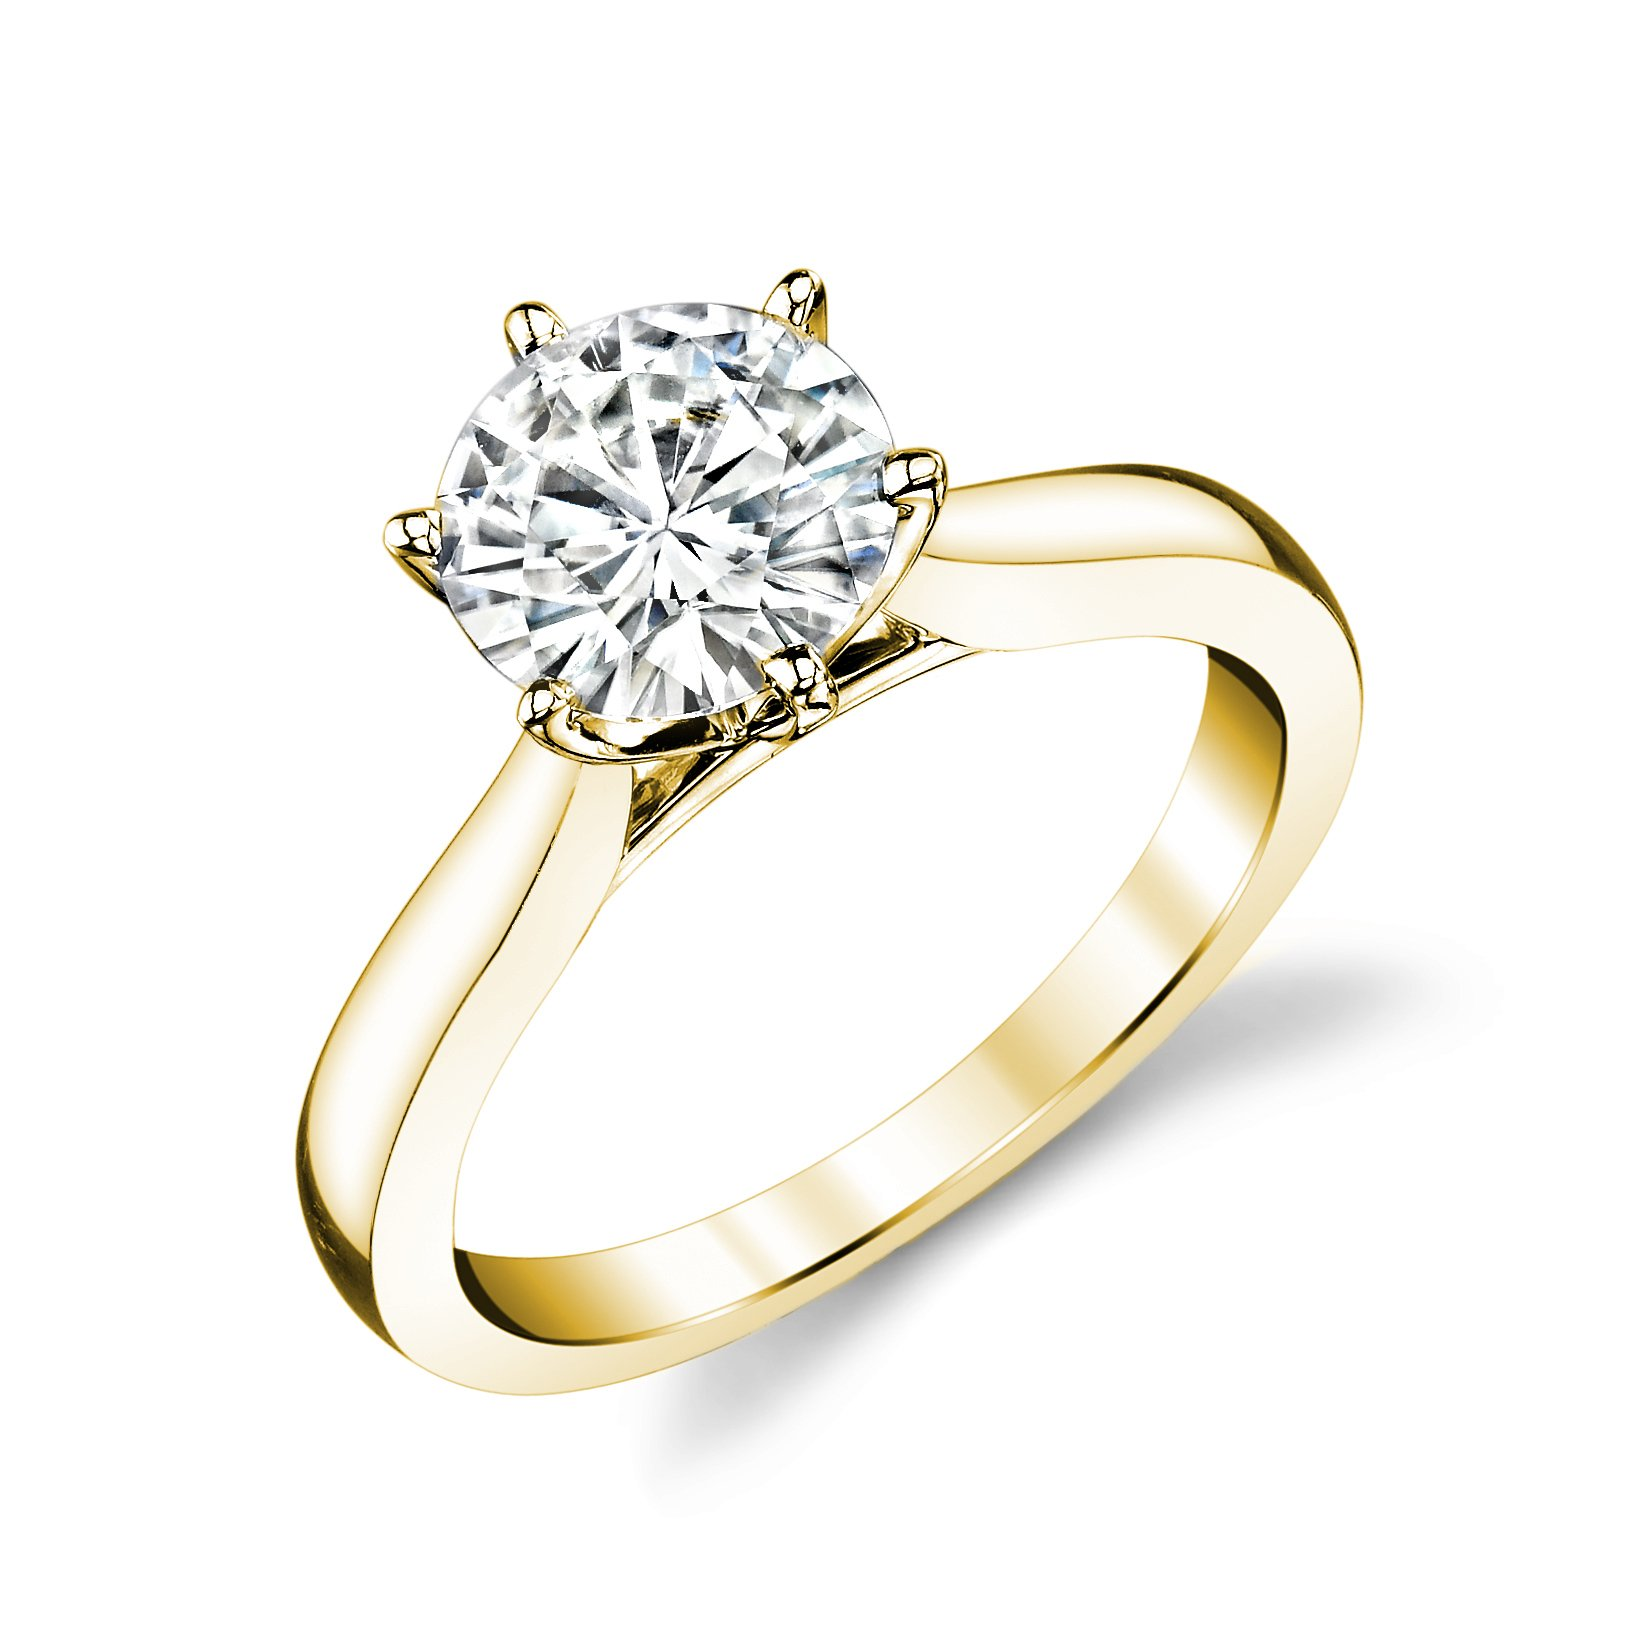 Forever Brilliant Round 8.0mm Moissanite Engagement Ring - size 8, 1.90ct DEW By Charles & Colvard by Charles & Colvard